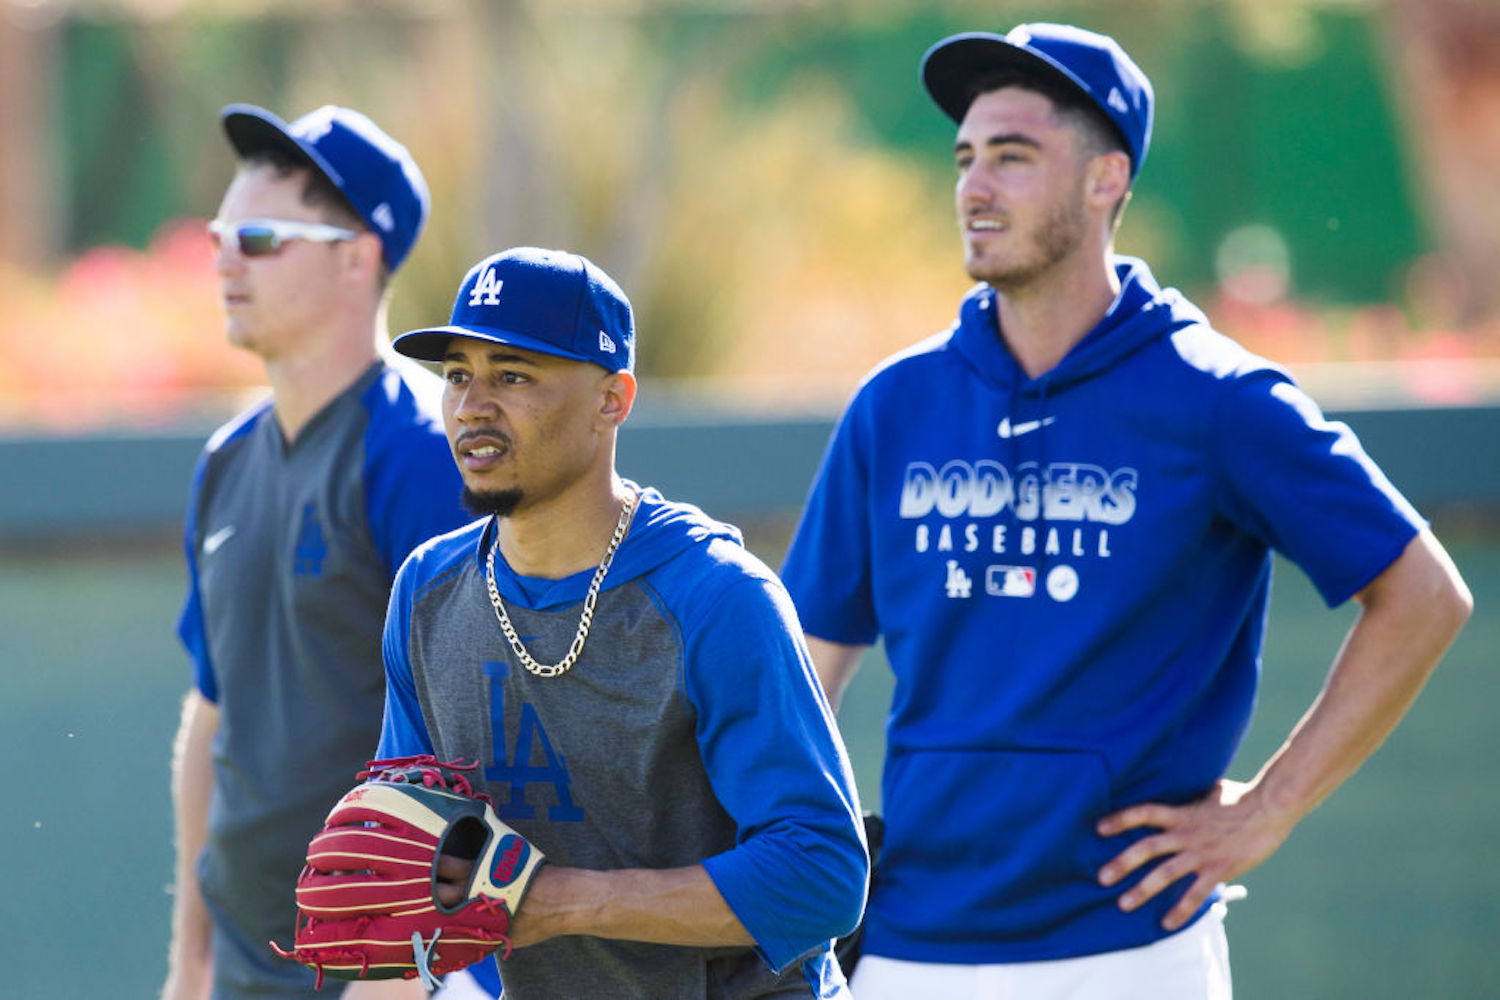 The Dodgers and Mookie Betts are closing in on a mega contract worth $380 million, while Cody Bellinger is still waiting for his payday.